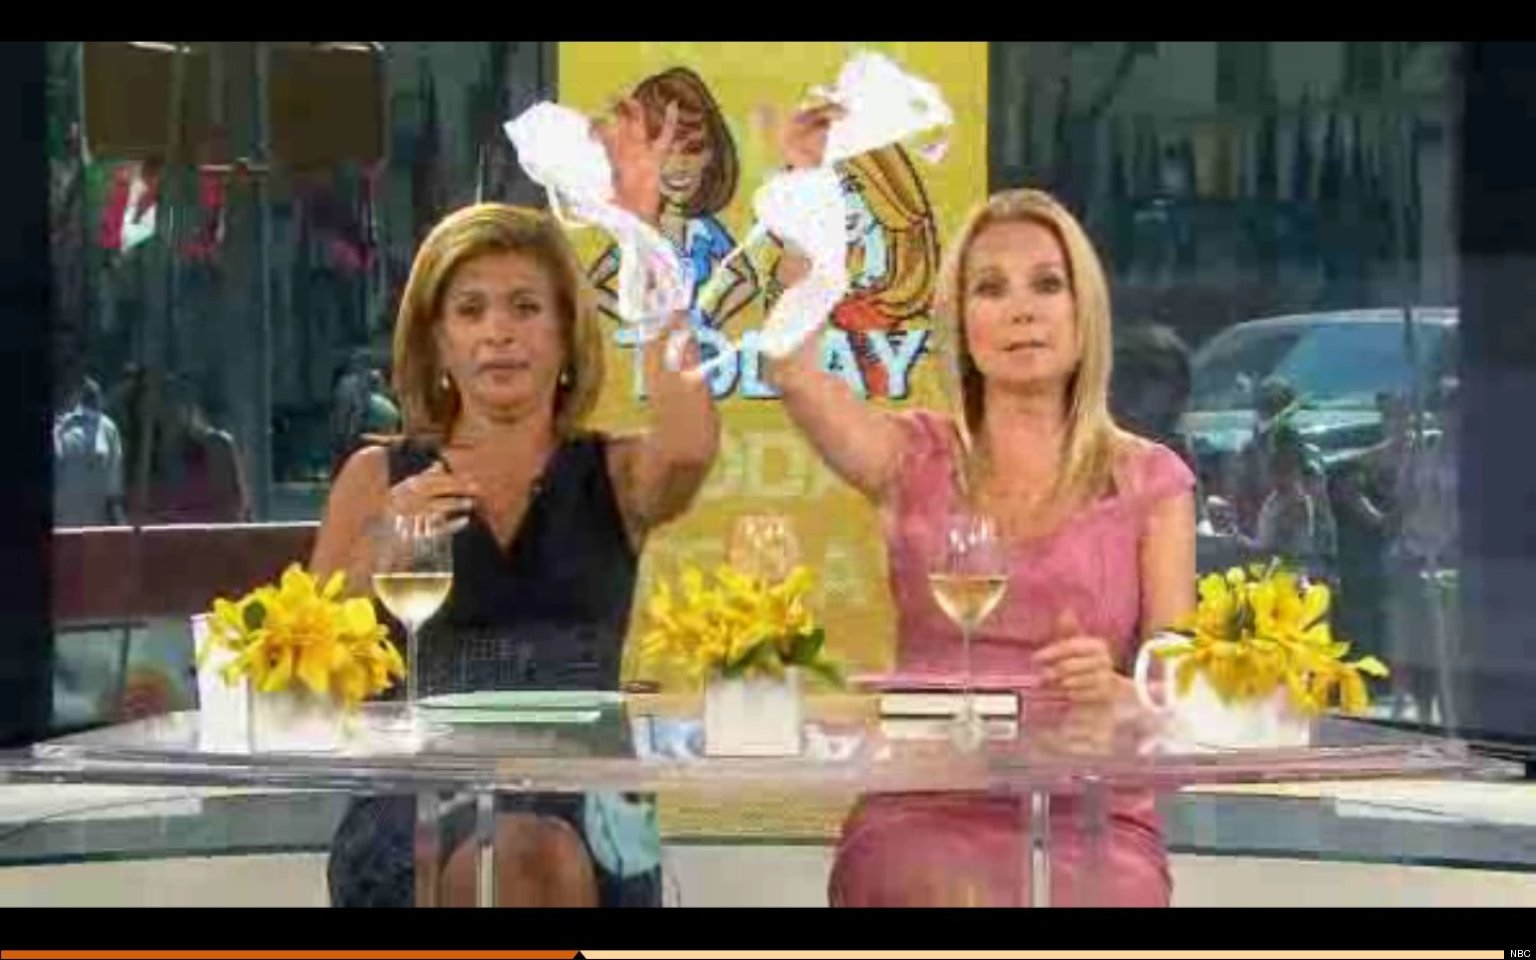 Hoda and Kathie Lee Gifford